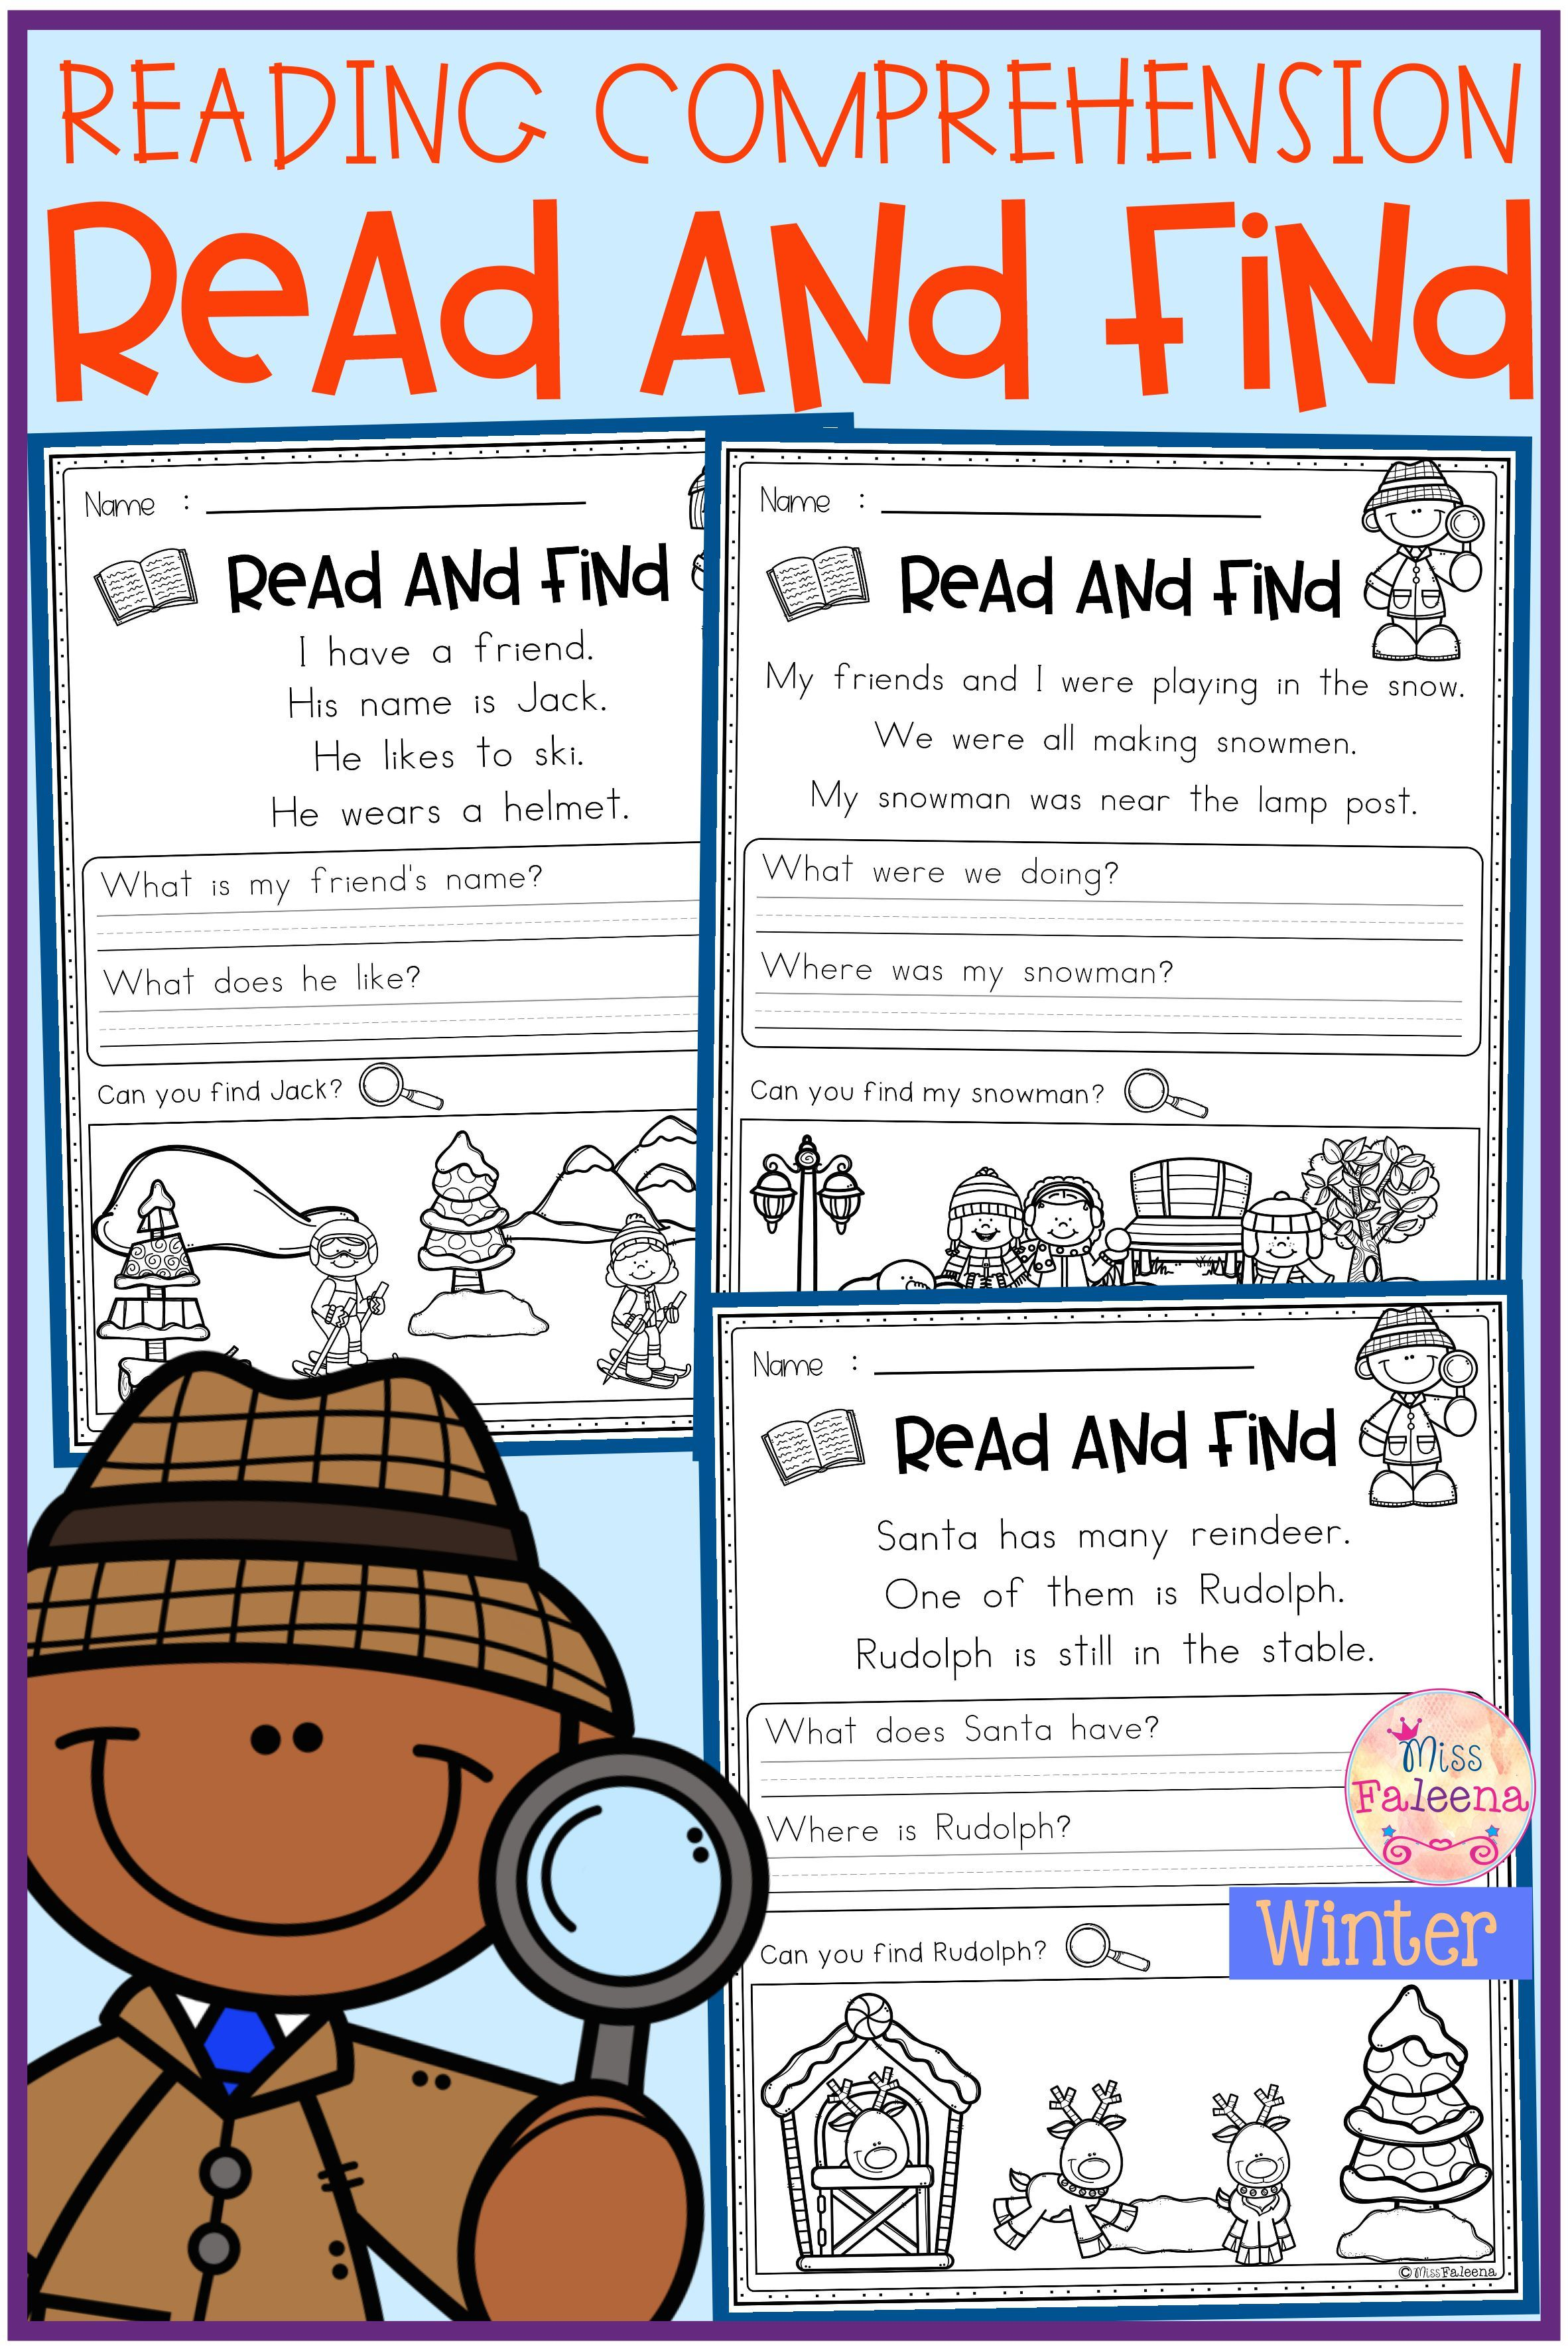 Winter Reading Comprehension Read And Find Reading Comprehension Reading Comprehension Worksheets Comprehension [ 3544 x 2364 Pixel ]